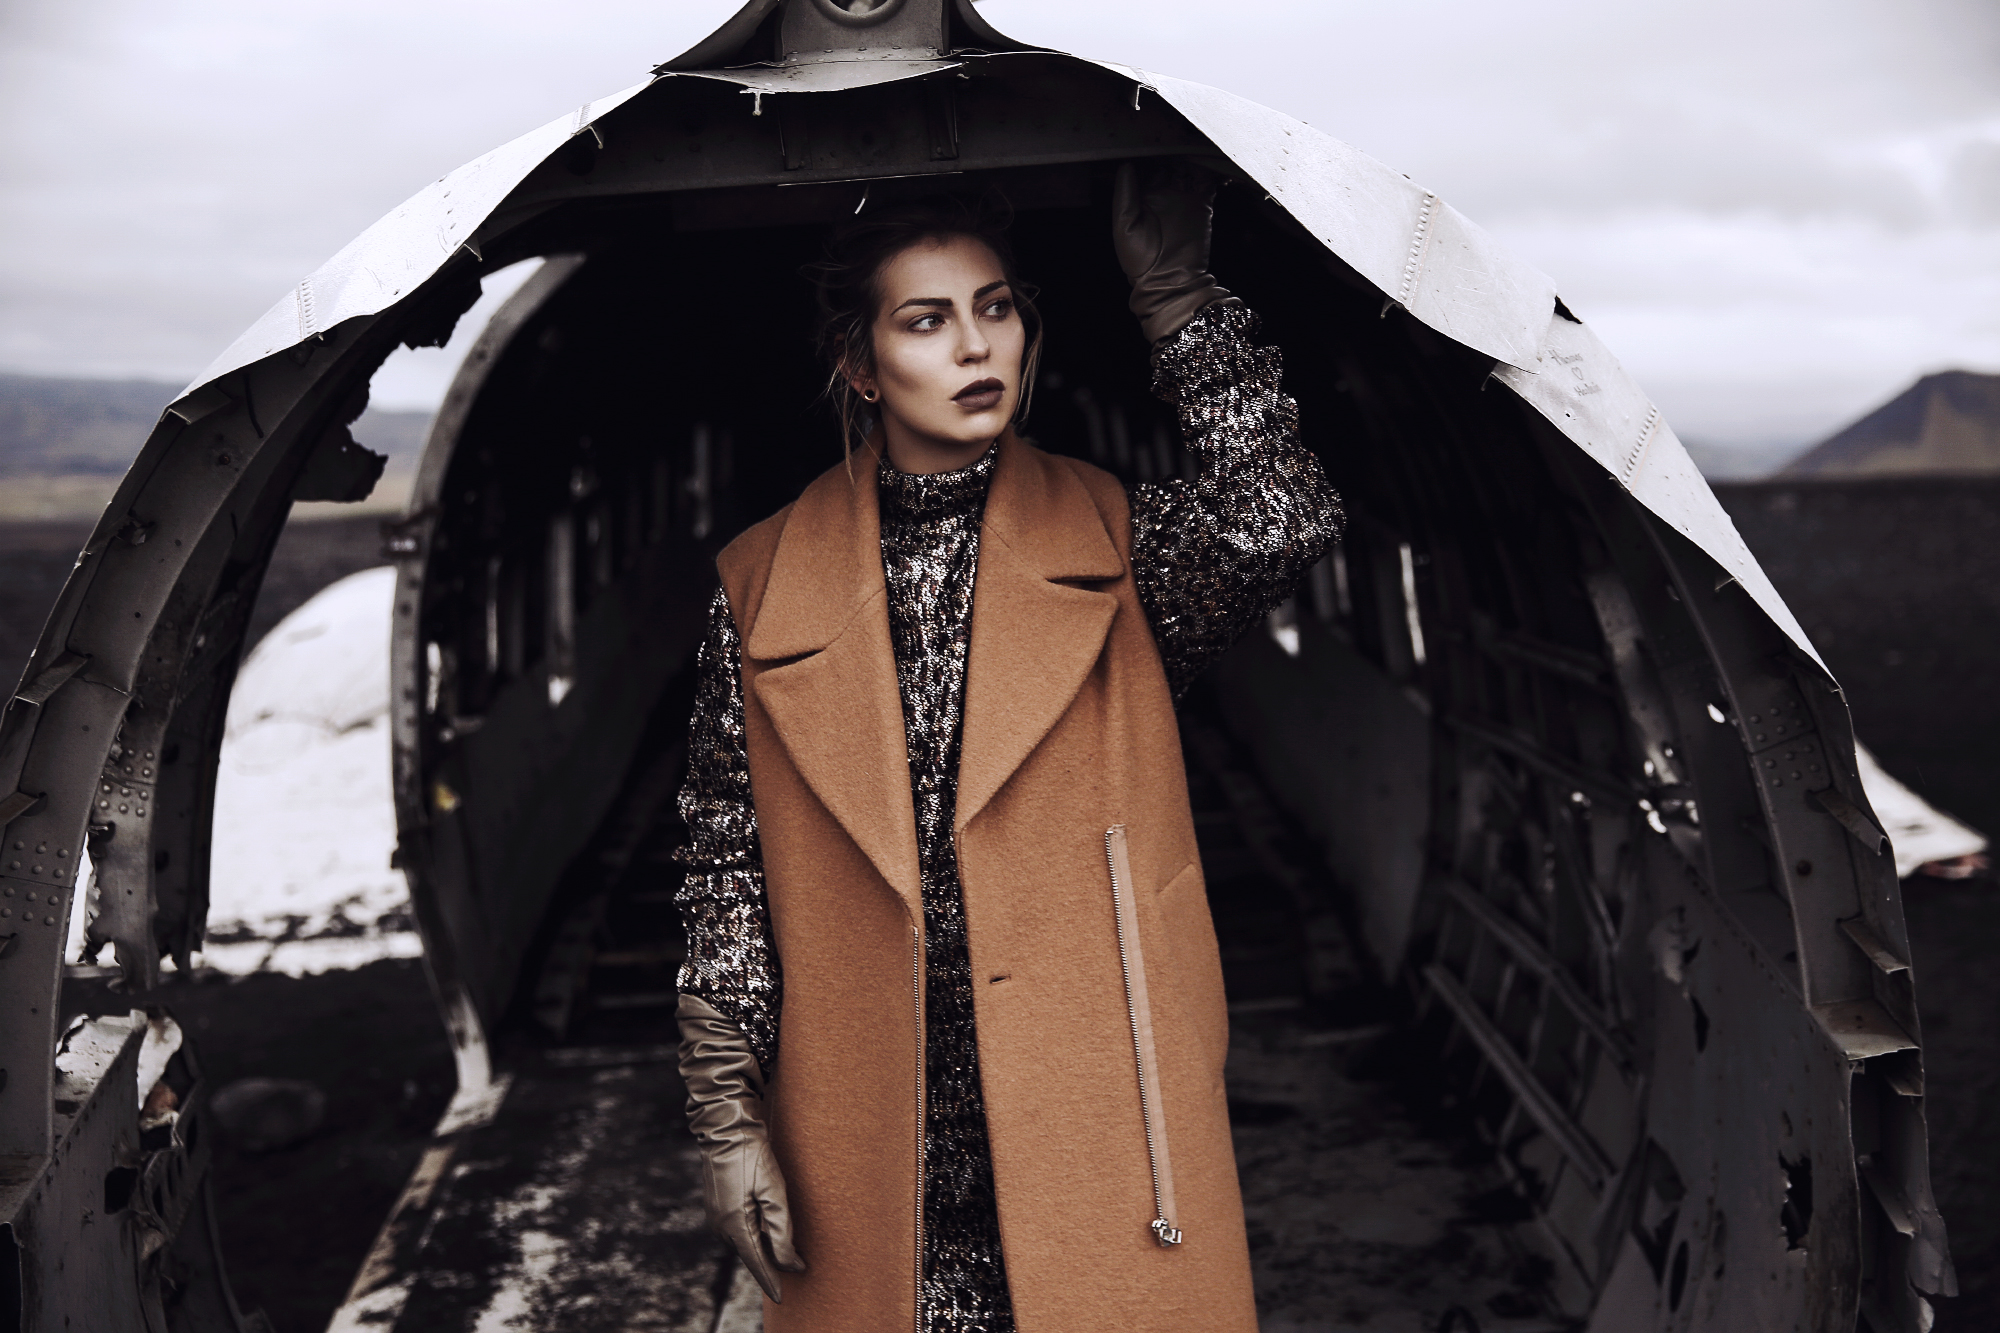 Masha Sedgwick | Berlin | Germany | Fashion | Plane| Outfit